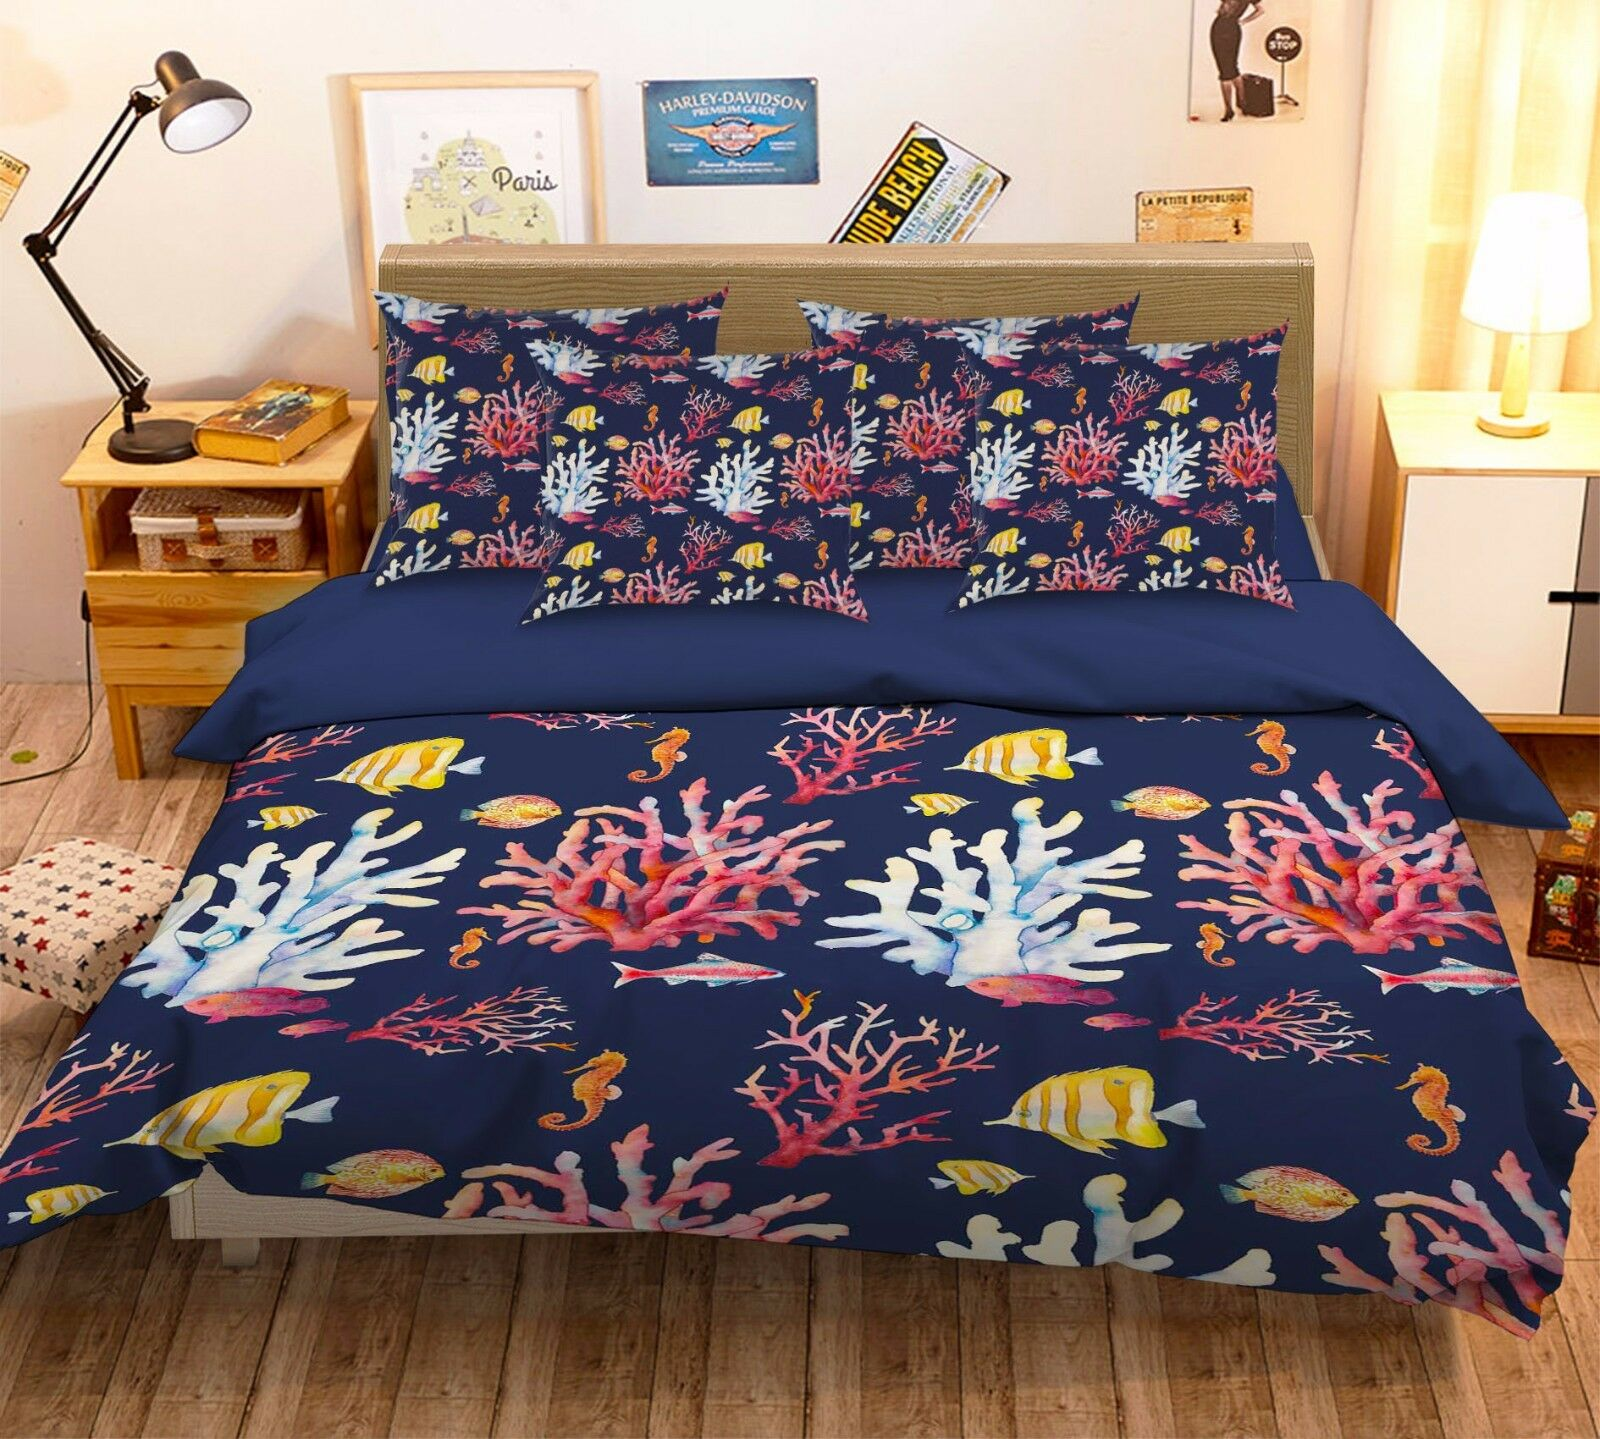 3D Farbe Rocal 786 Bed Pillowcases Quilt Duvet Cover Set Single Queen UK Carly